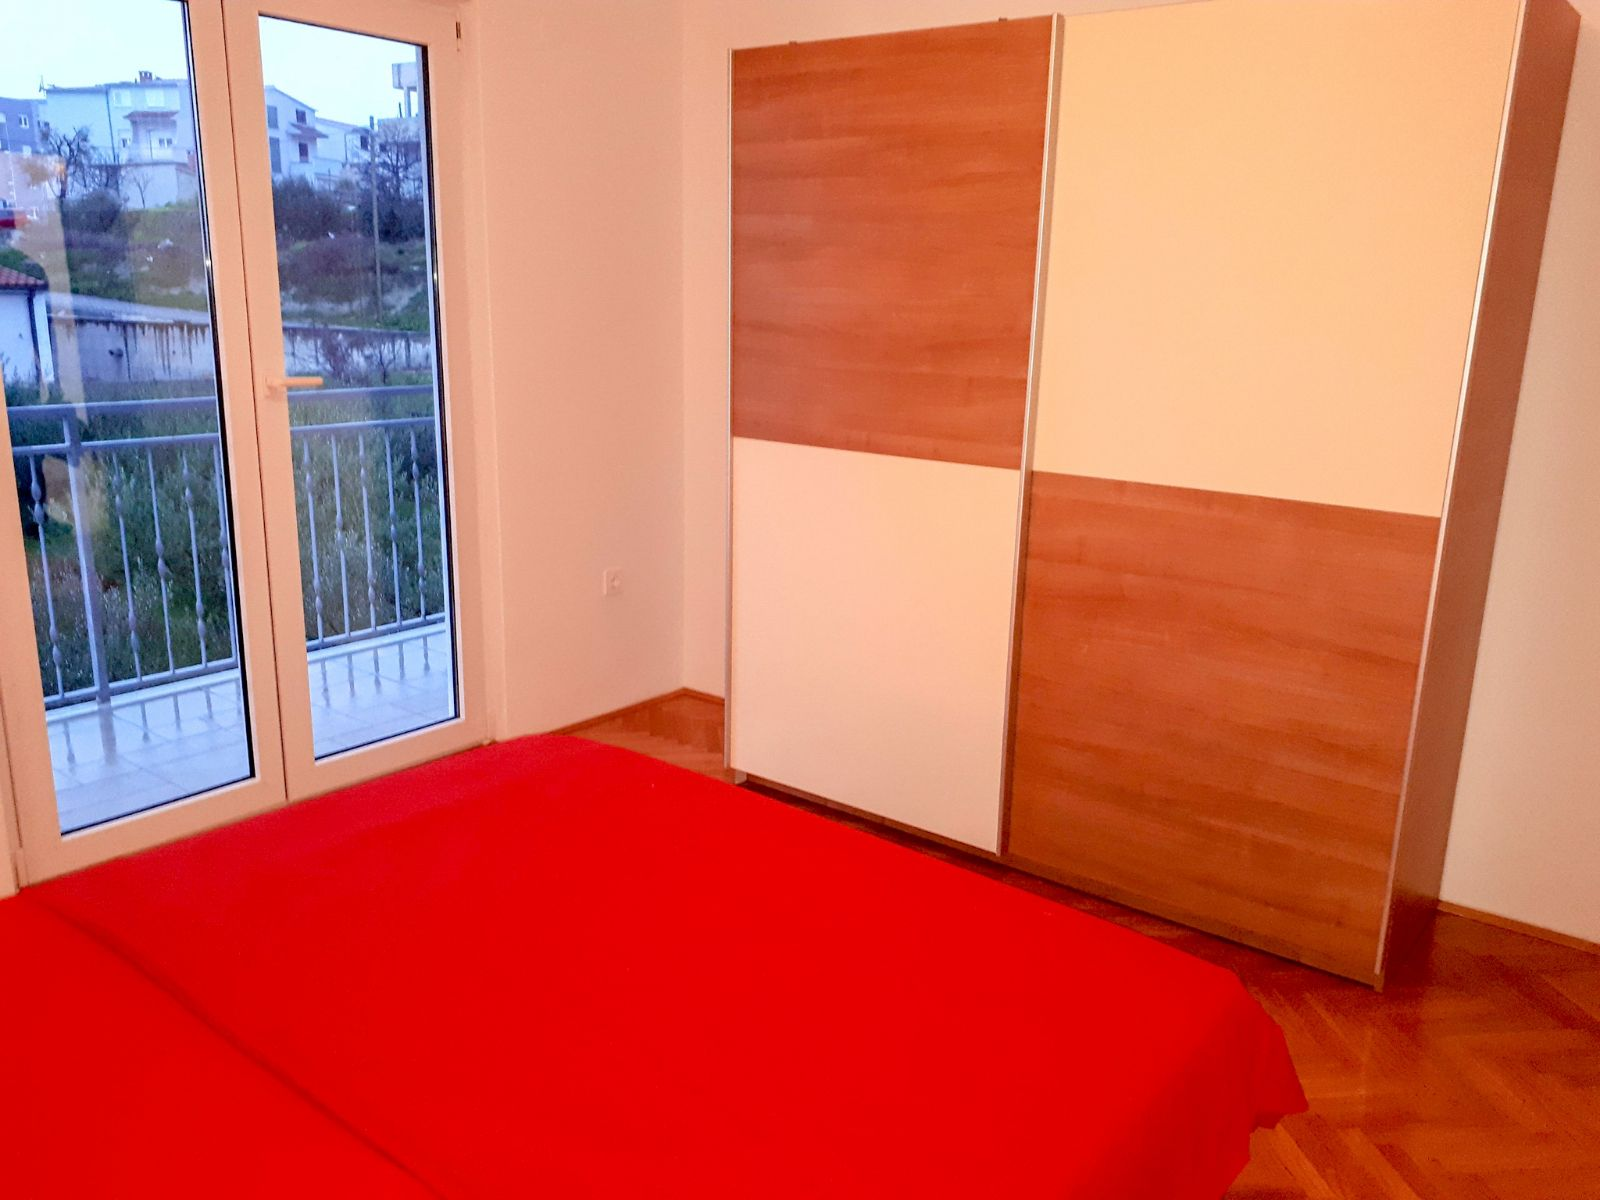 Split,Croatia,3 Bedrooms Bedrooms,2 BathroomsBathrooms,Apartment,1155